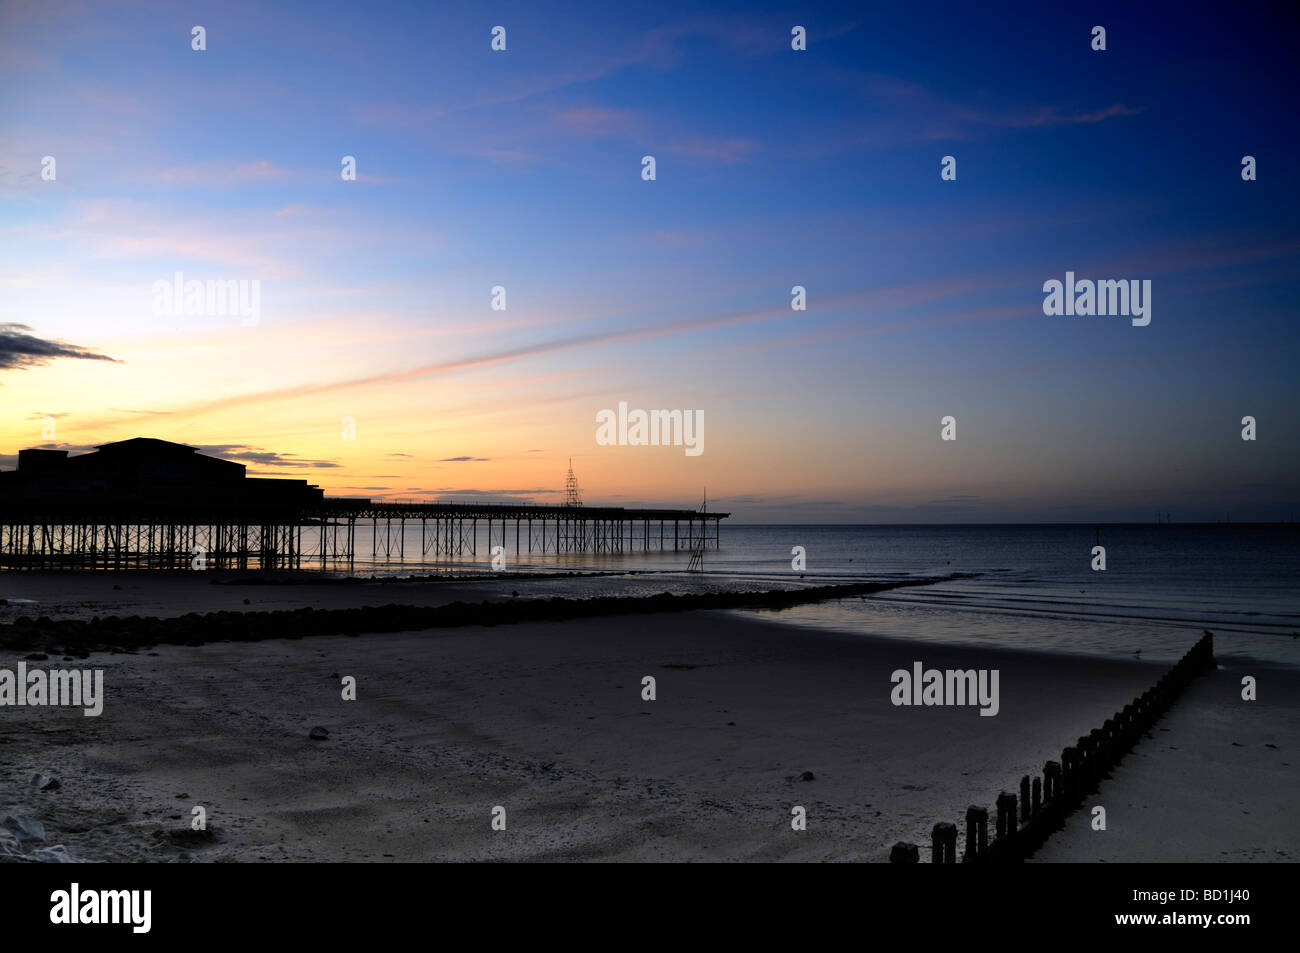 Colwyn Bay a view of Colwyn pier at sunset - Stock Image